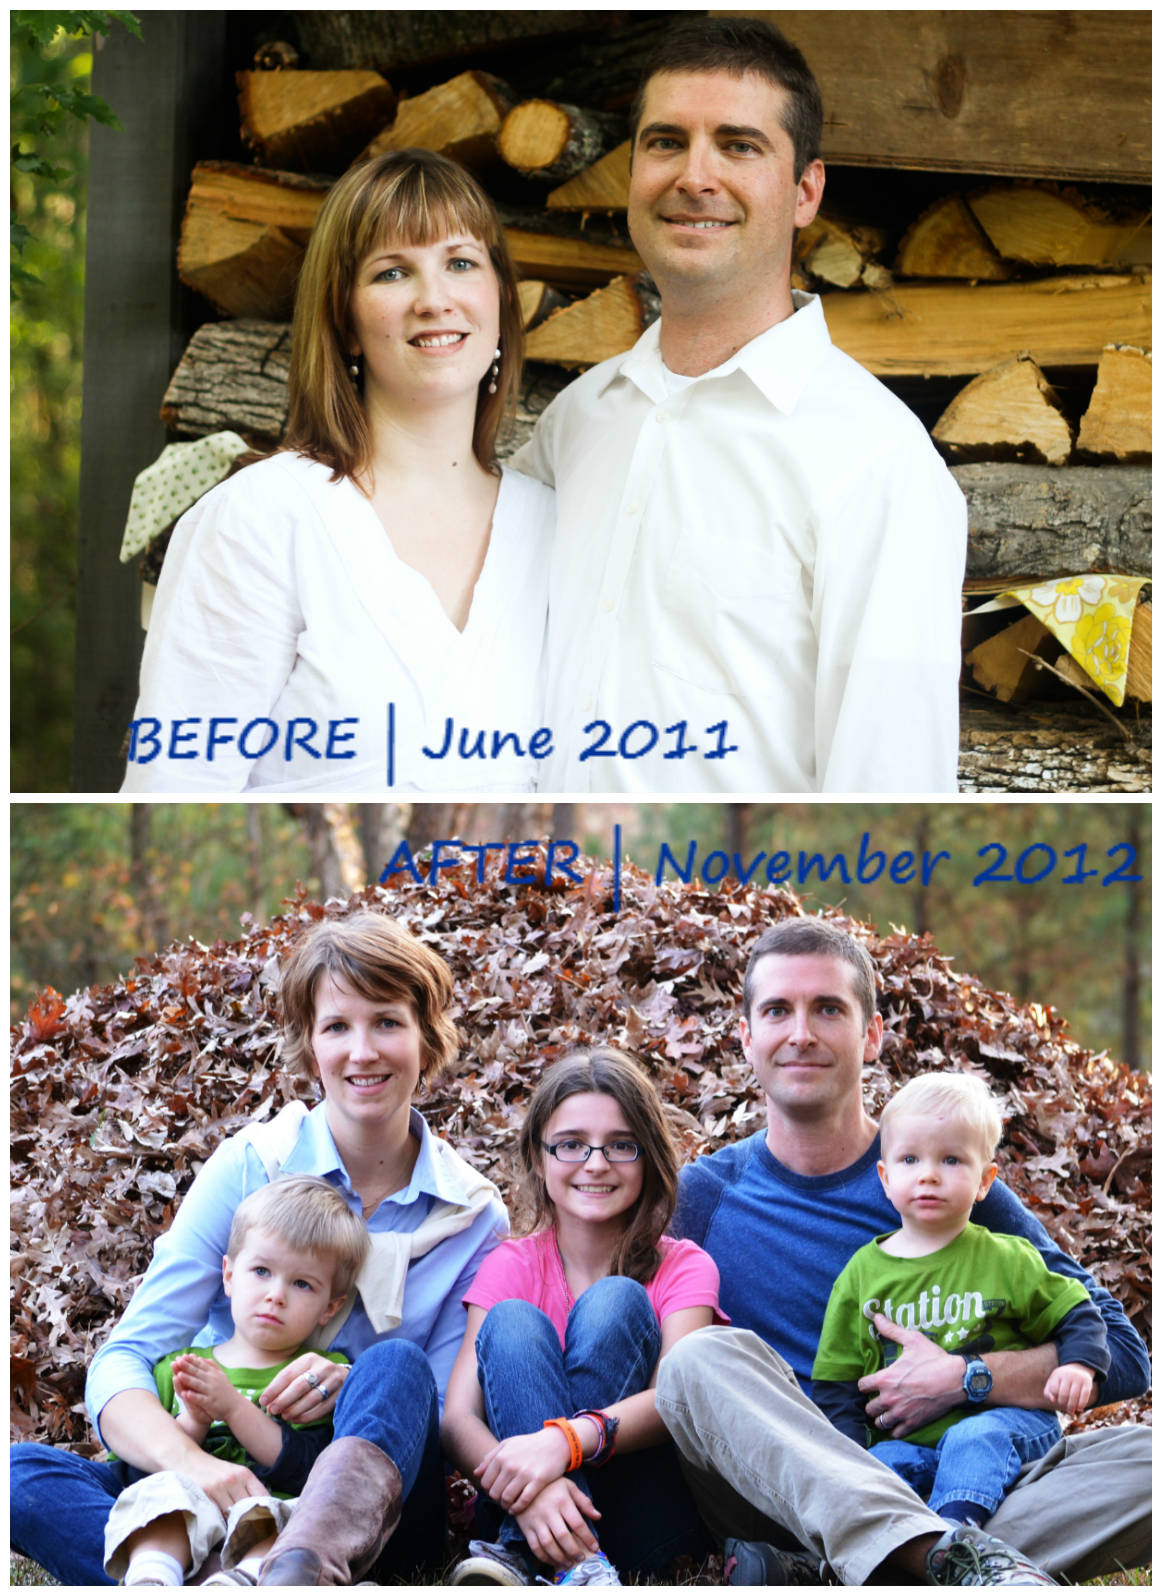 Busy Wife and Mom loses weight with Paleo diet